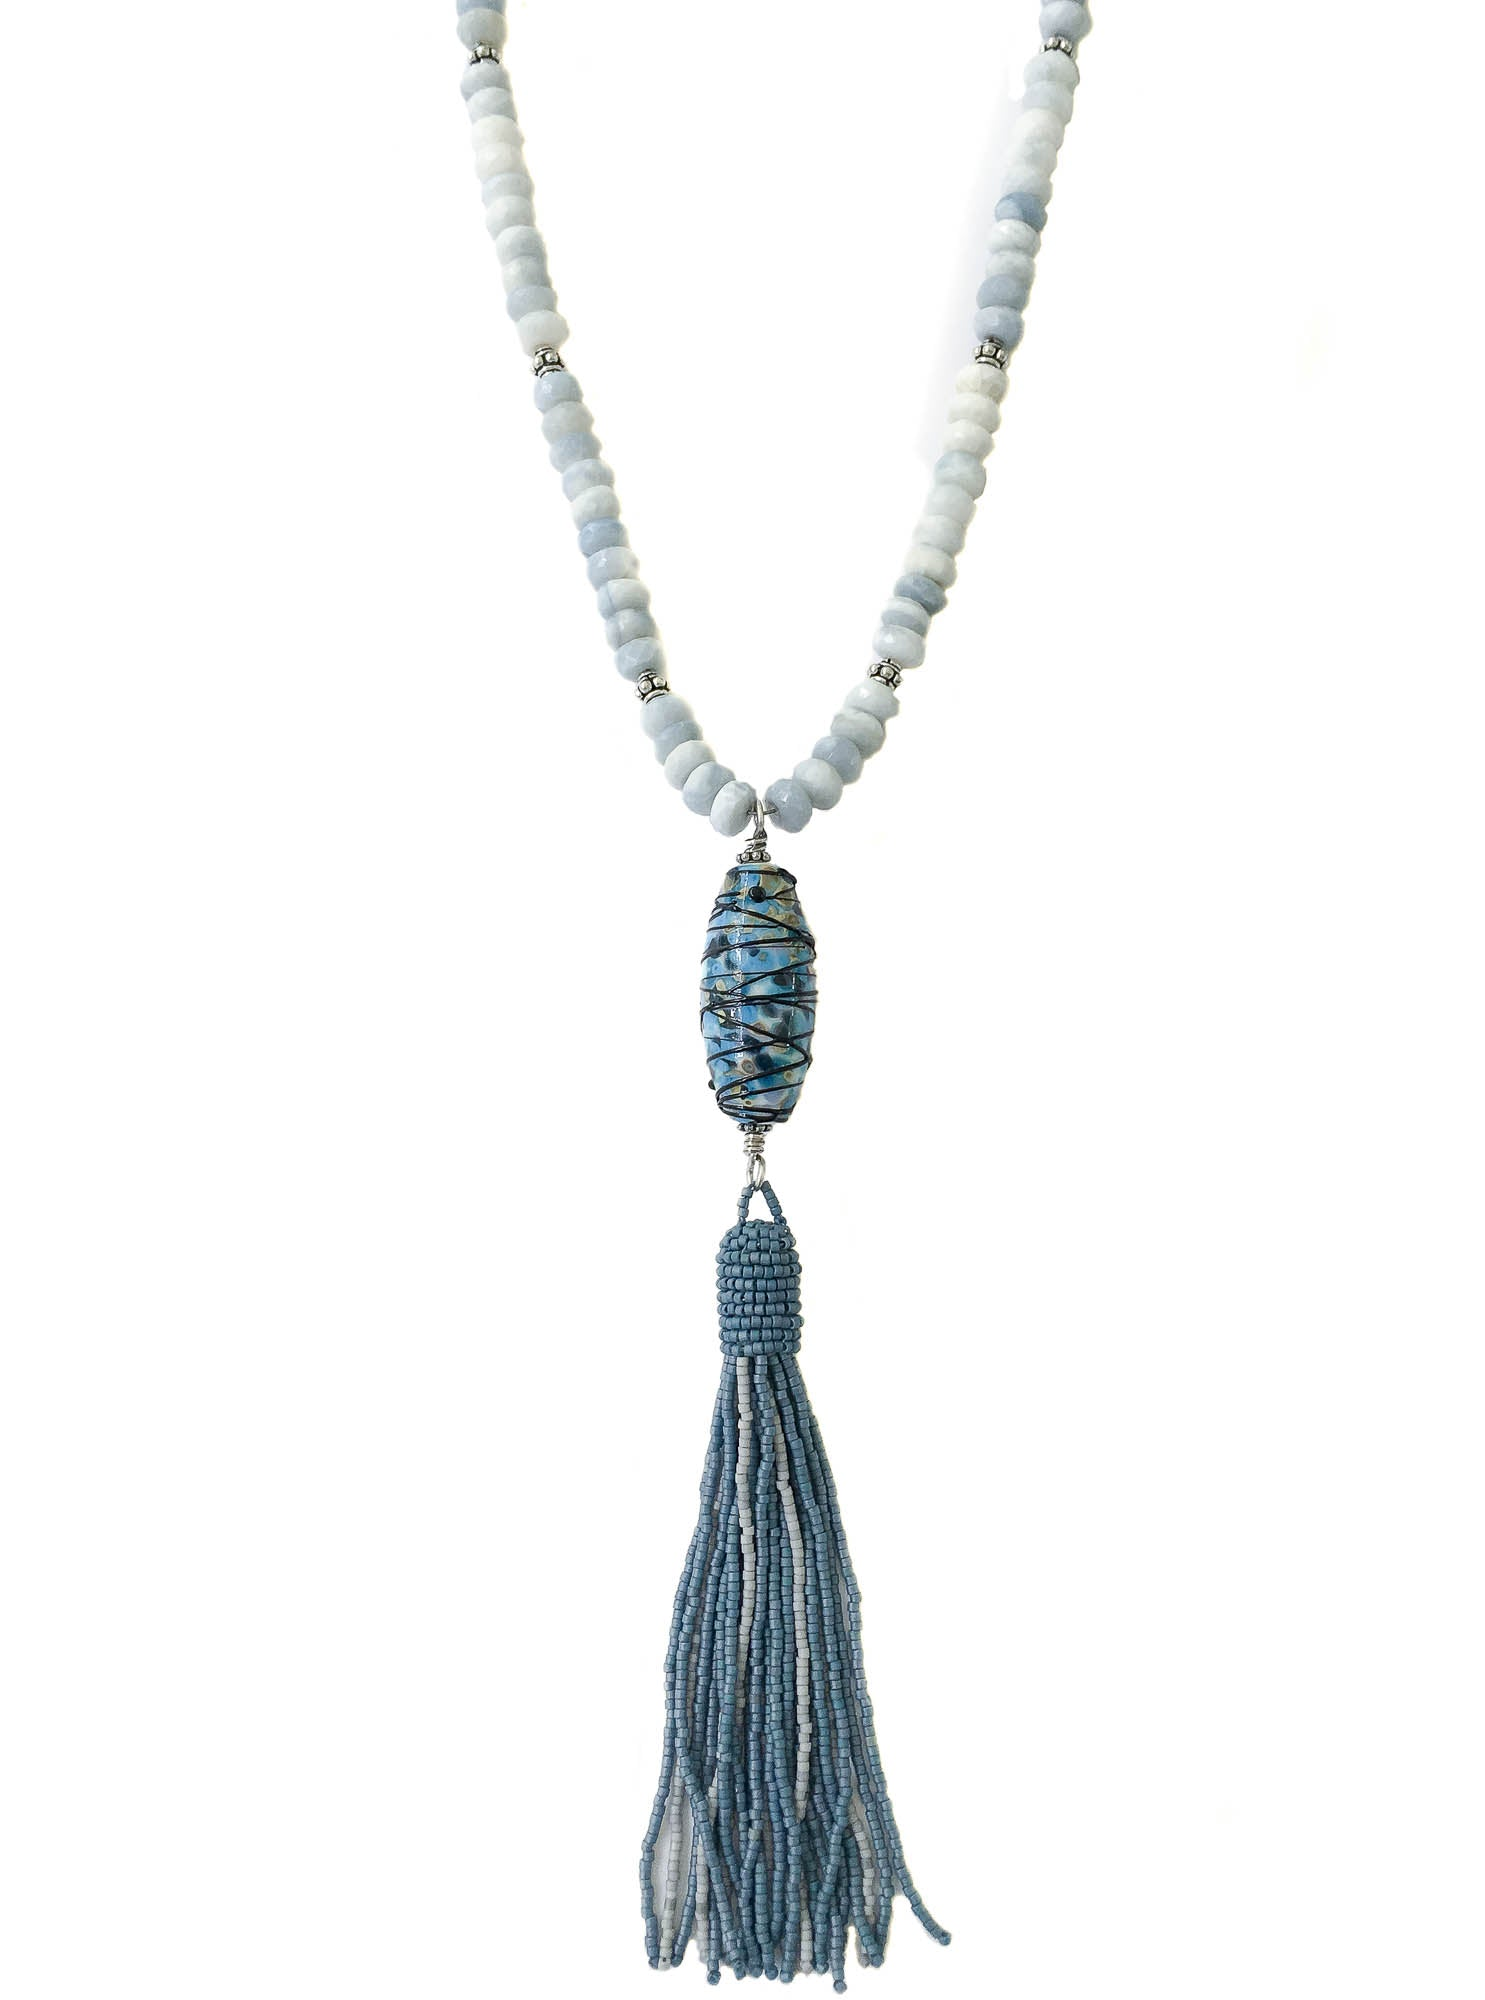 designs tasselnecklace products tassel necklace backstory blush